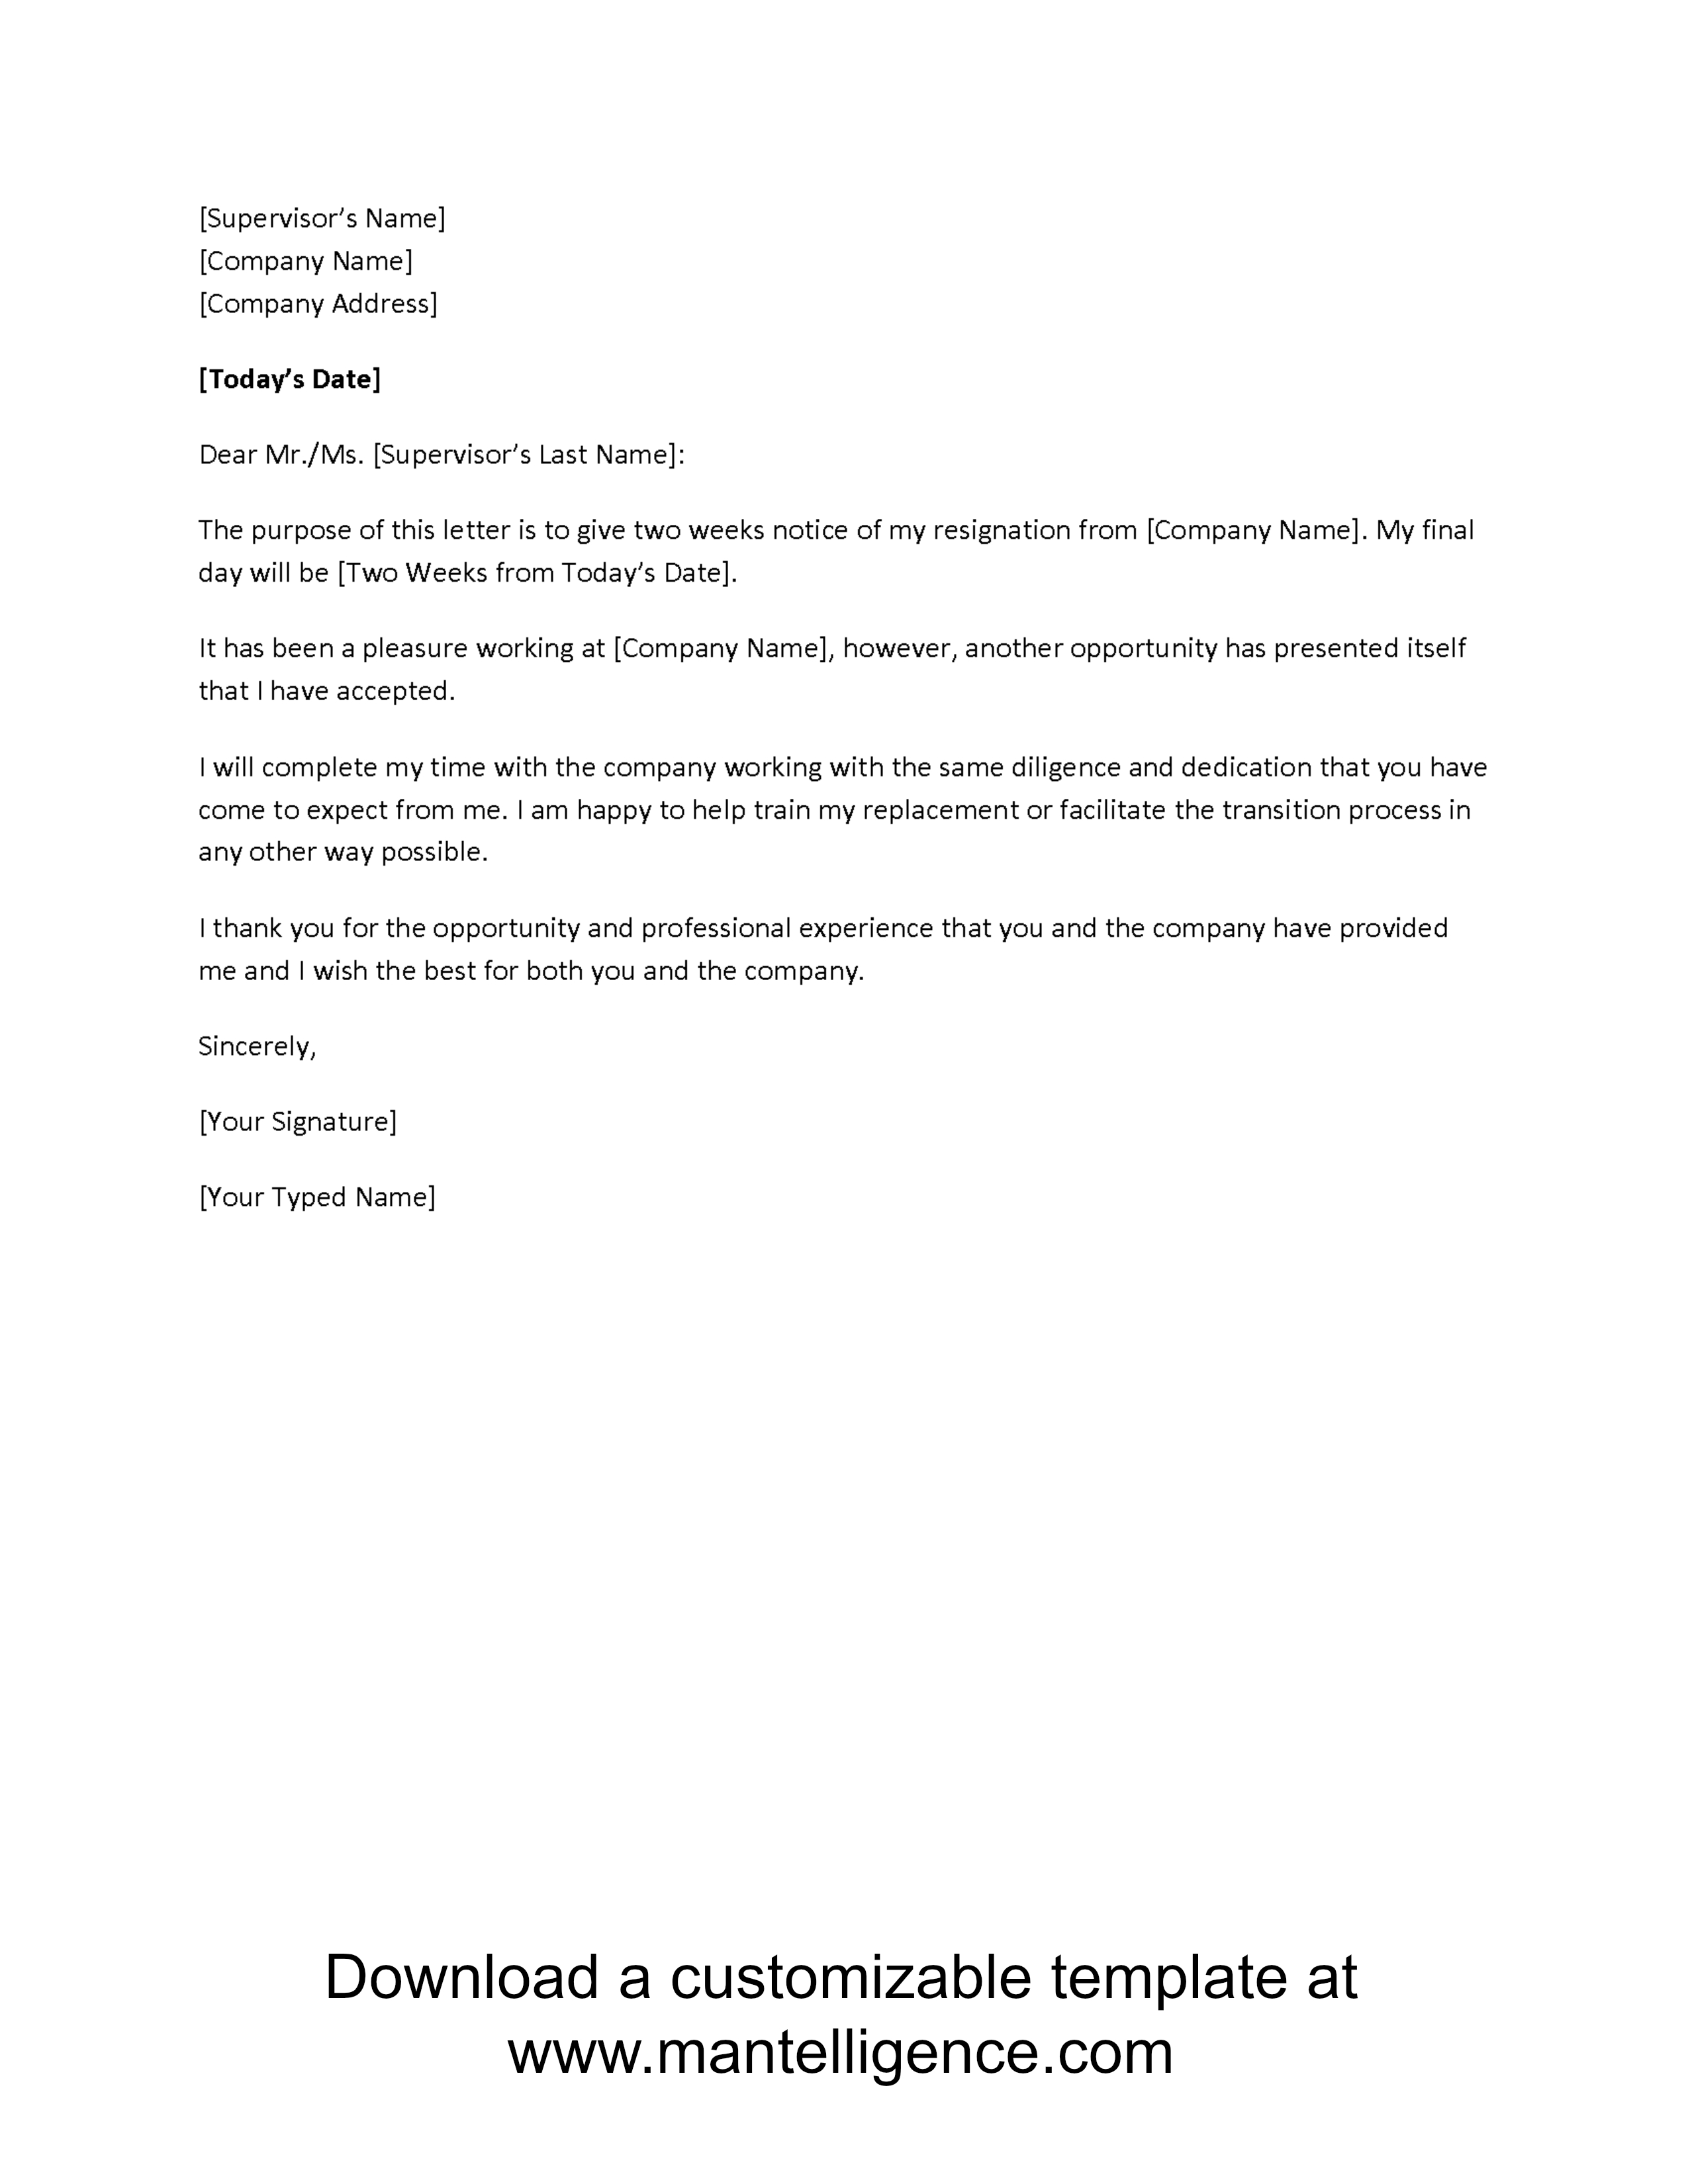 Notice to Vacate Letter Template - 3 Highly Professional Two Weeks Notice Letter Templates